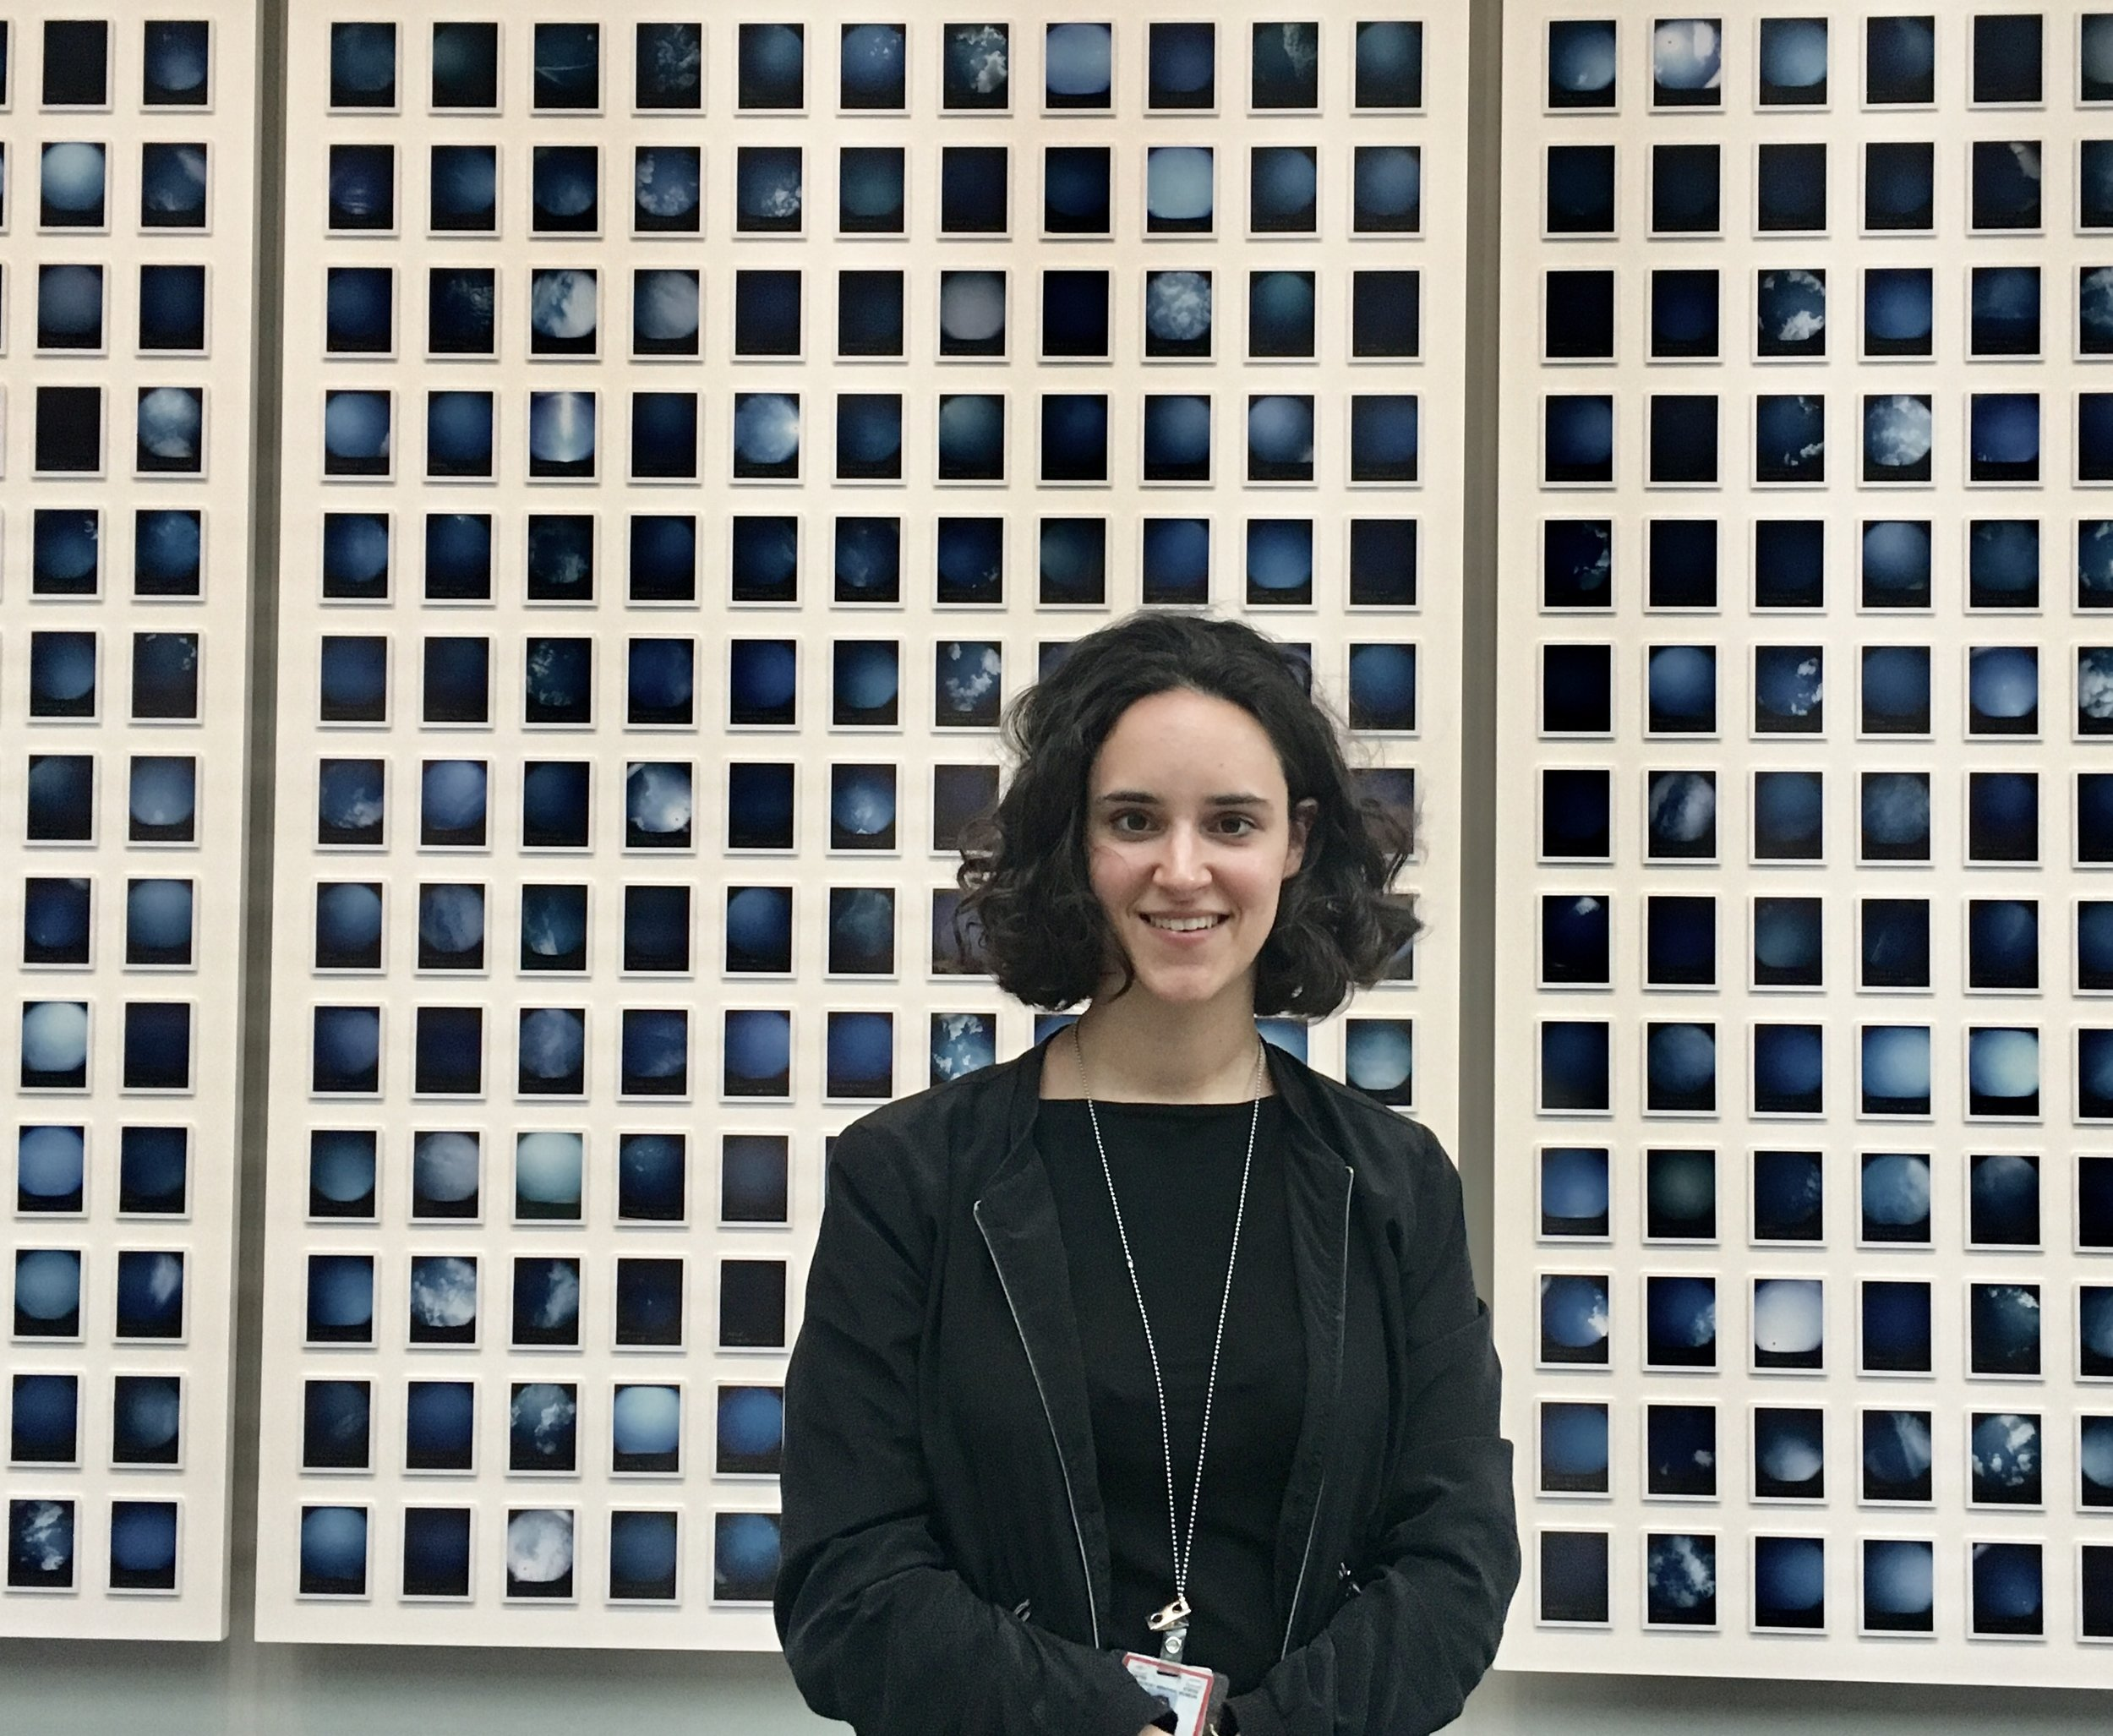 Caroline Schenk is pictured in front of a new installation in the museum titled   One Thousand and Seventy-Eight Blue Skies  . The artwork displays individual images of the sky photographed above every known Nazi concentration camp and killing center across Europe.